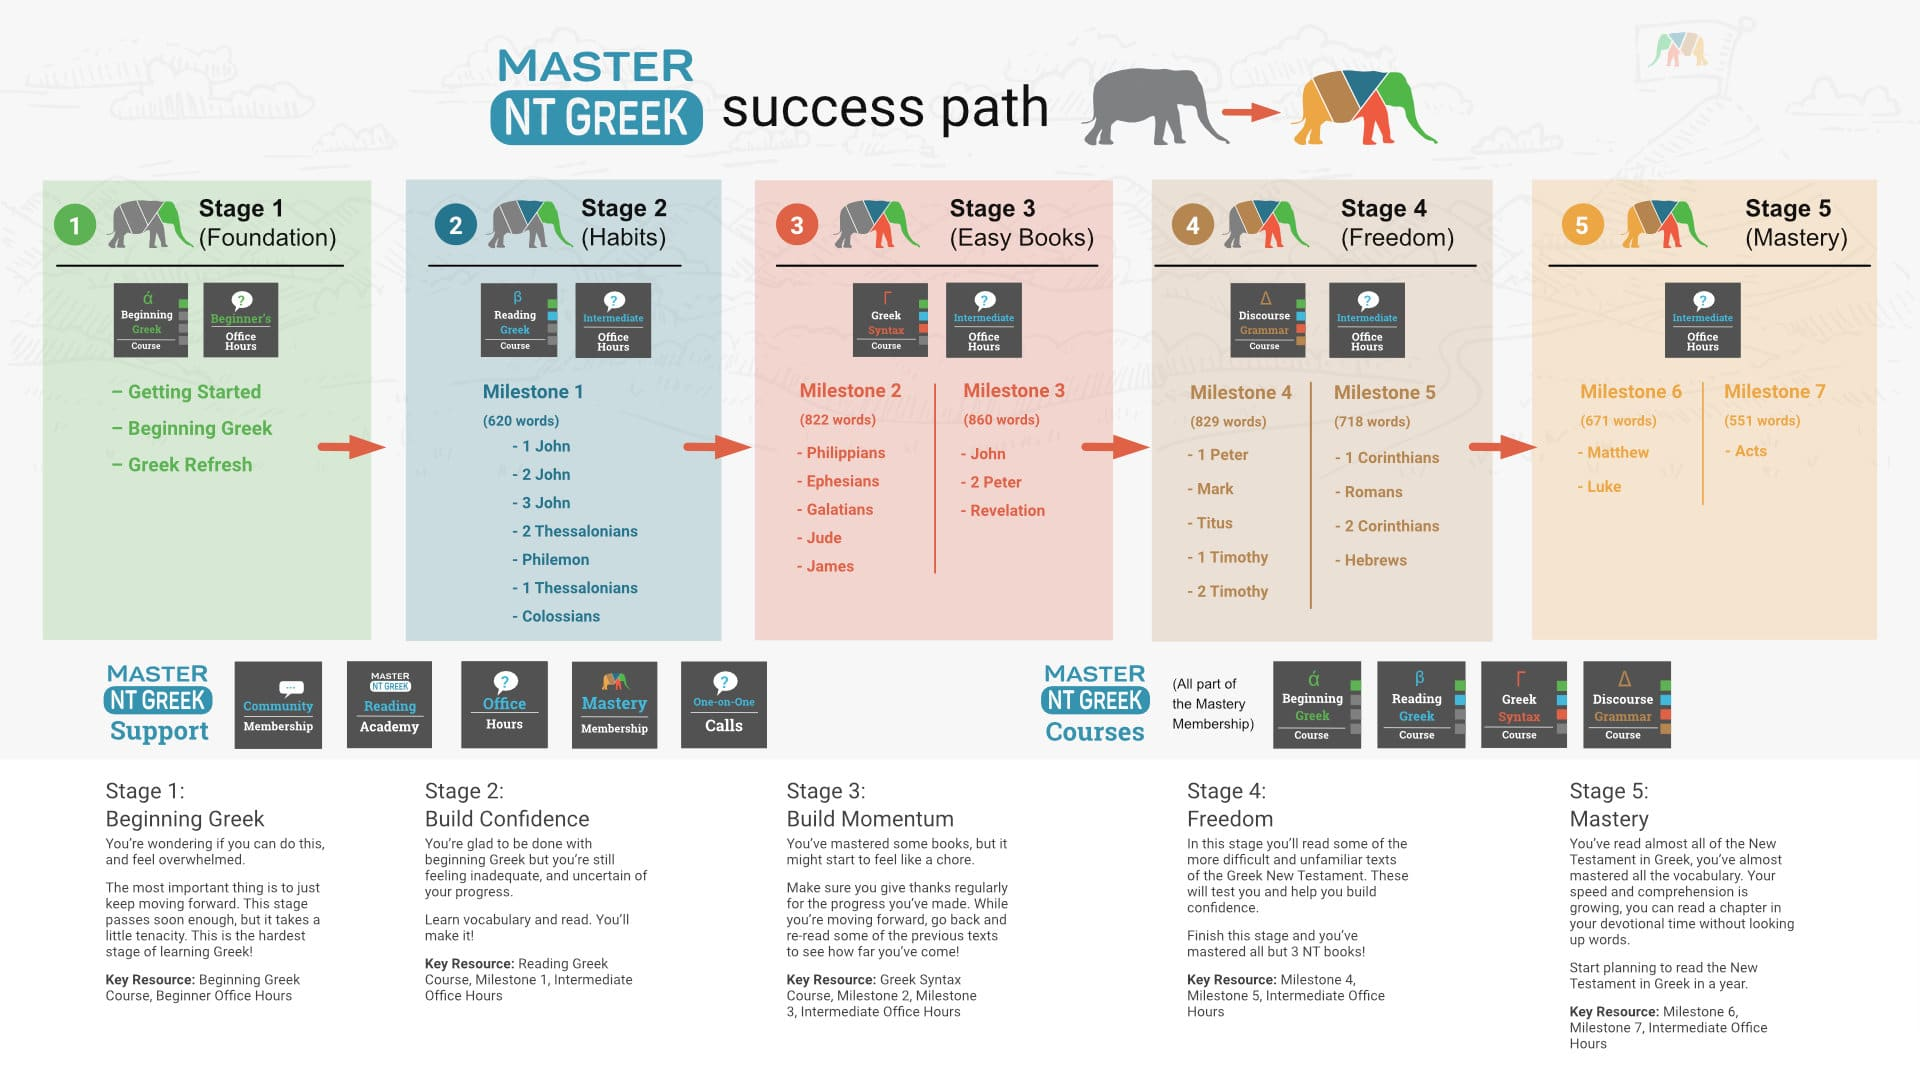 MNTGK Success Path 16;9